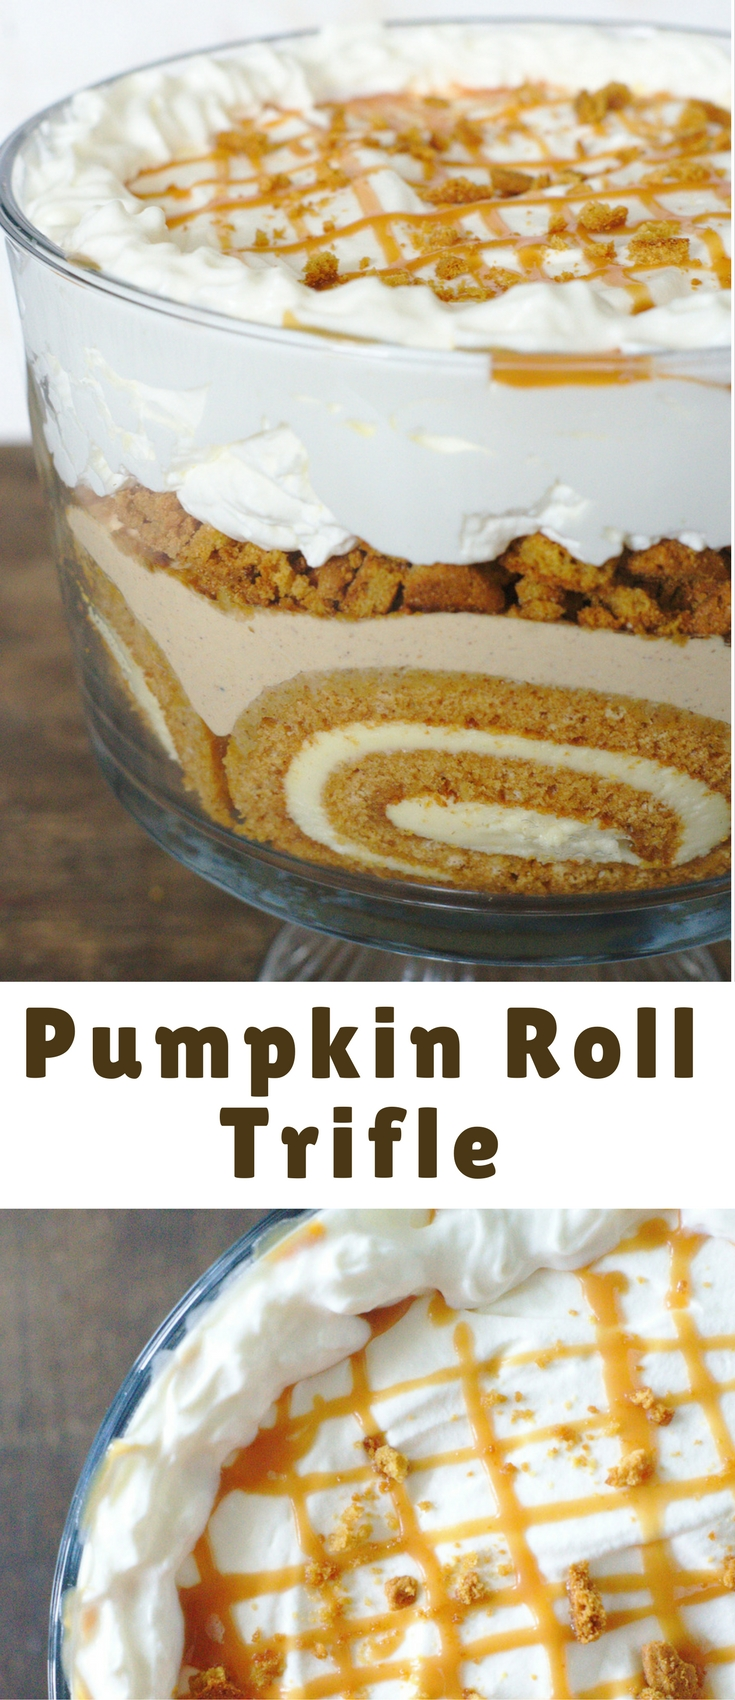 Pumpkin Roll Trifle – An elegant fall dessert that's perfect to feed a crowd! Gorgeous layers of pumpkin roll, crushed gingersnaps, pumpkin mousse, and whipped cream!